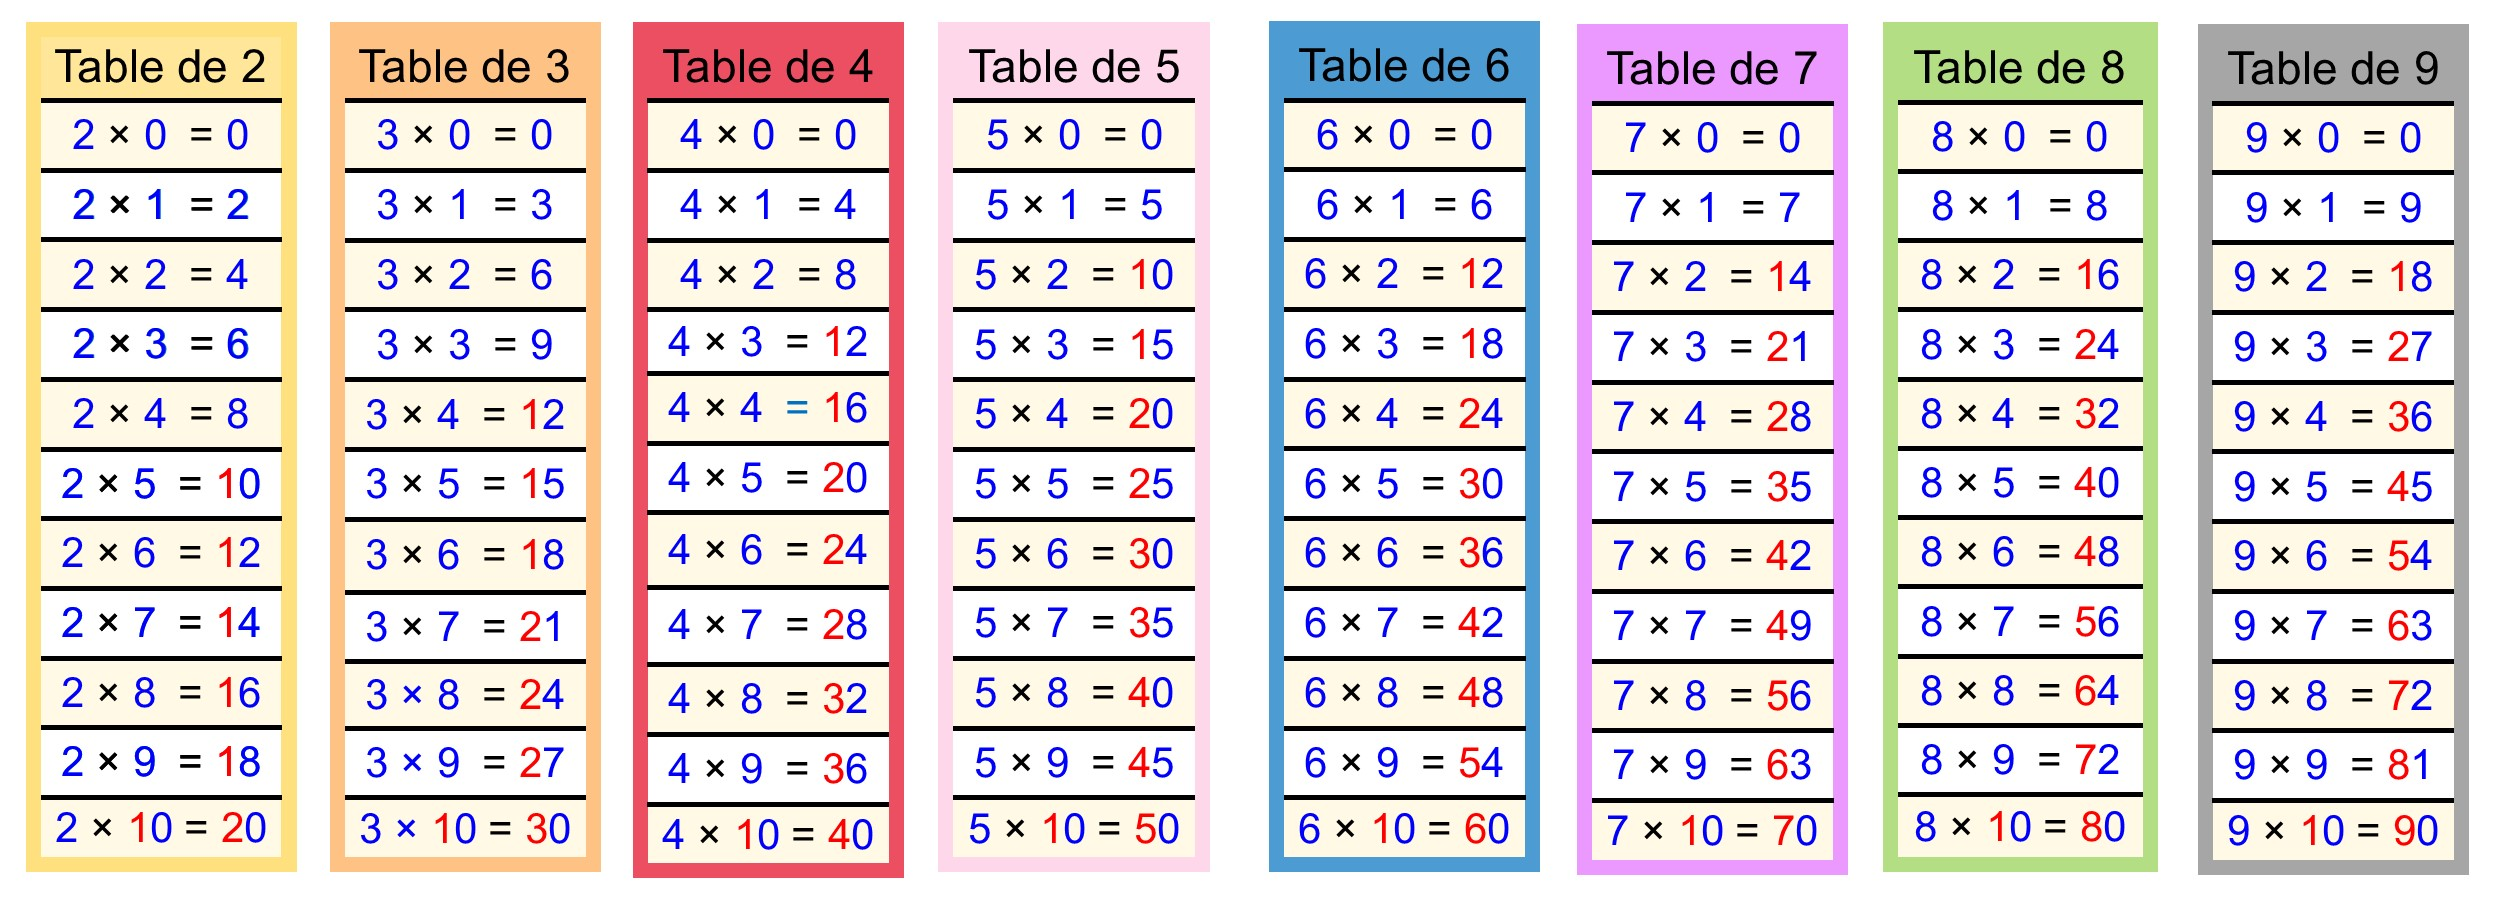 Calculer cartable fantastique - Apprendre les tables de multiplications en s amusant ...